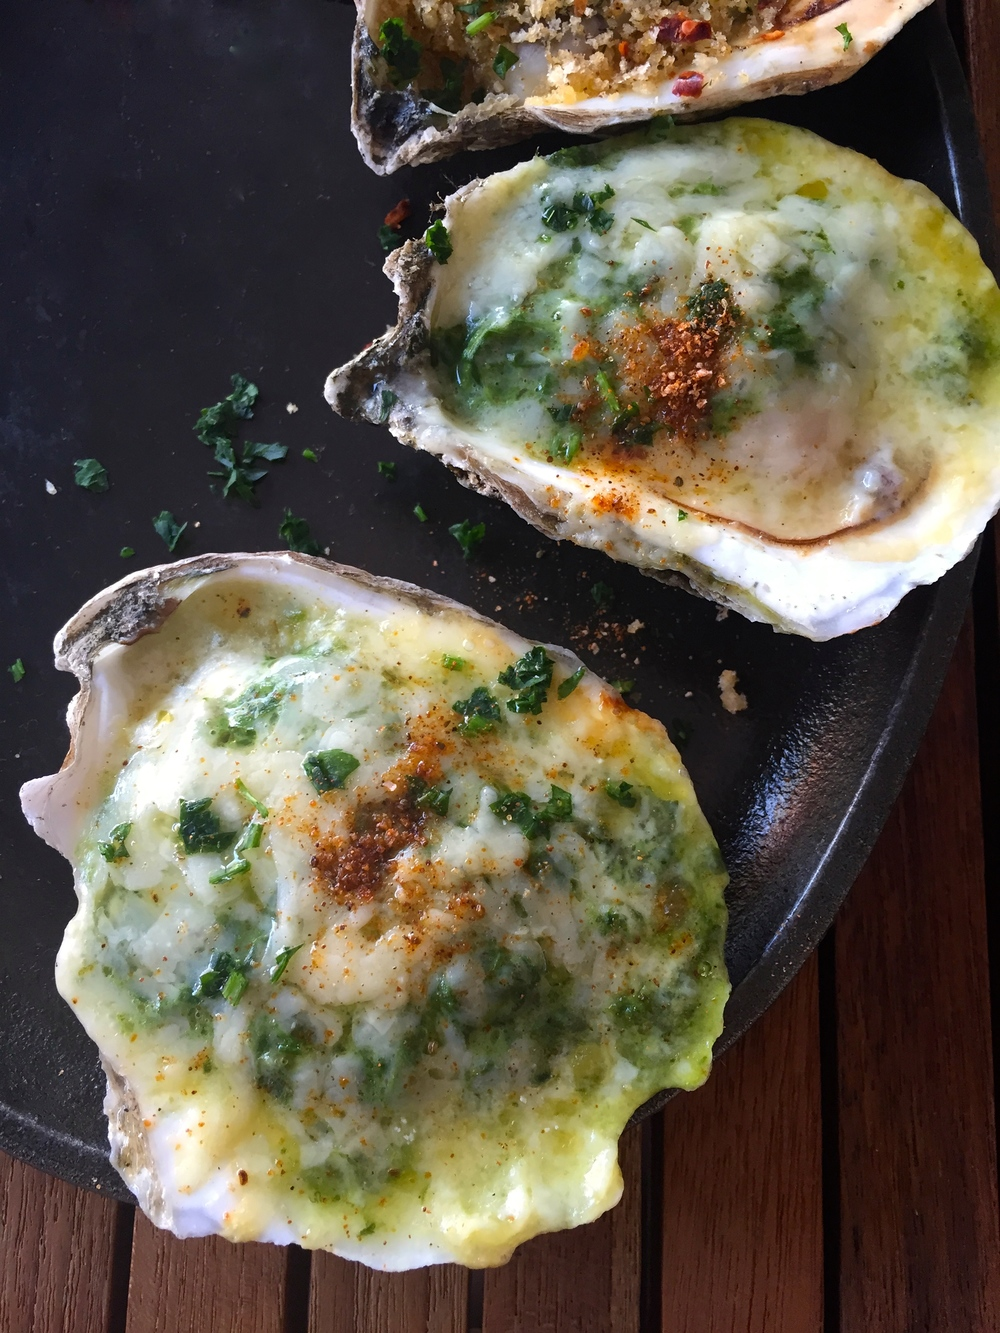 Grilled Oysters Rockefeller withpastis, spinach, lemon zest, aged white cheddar, and cream.